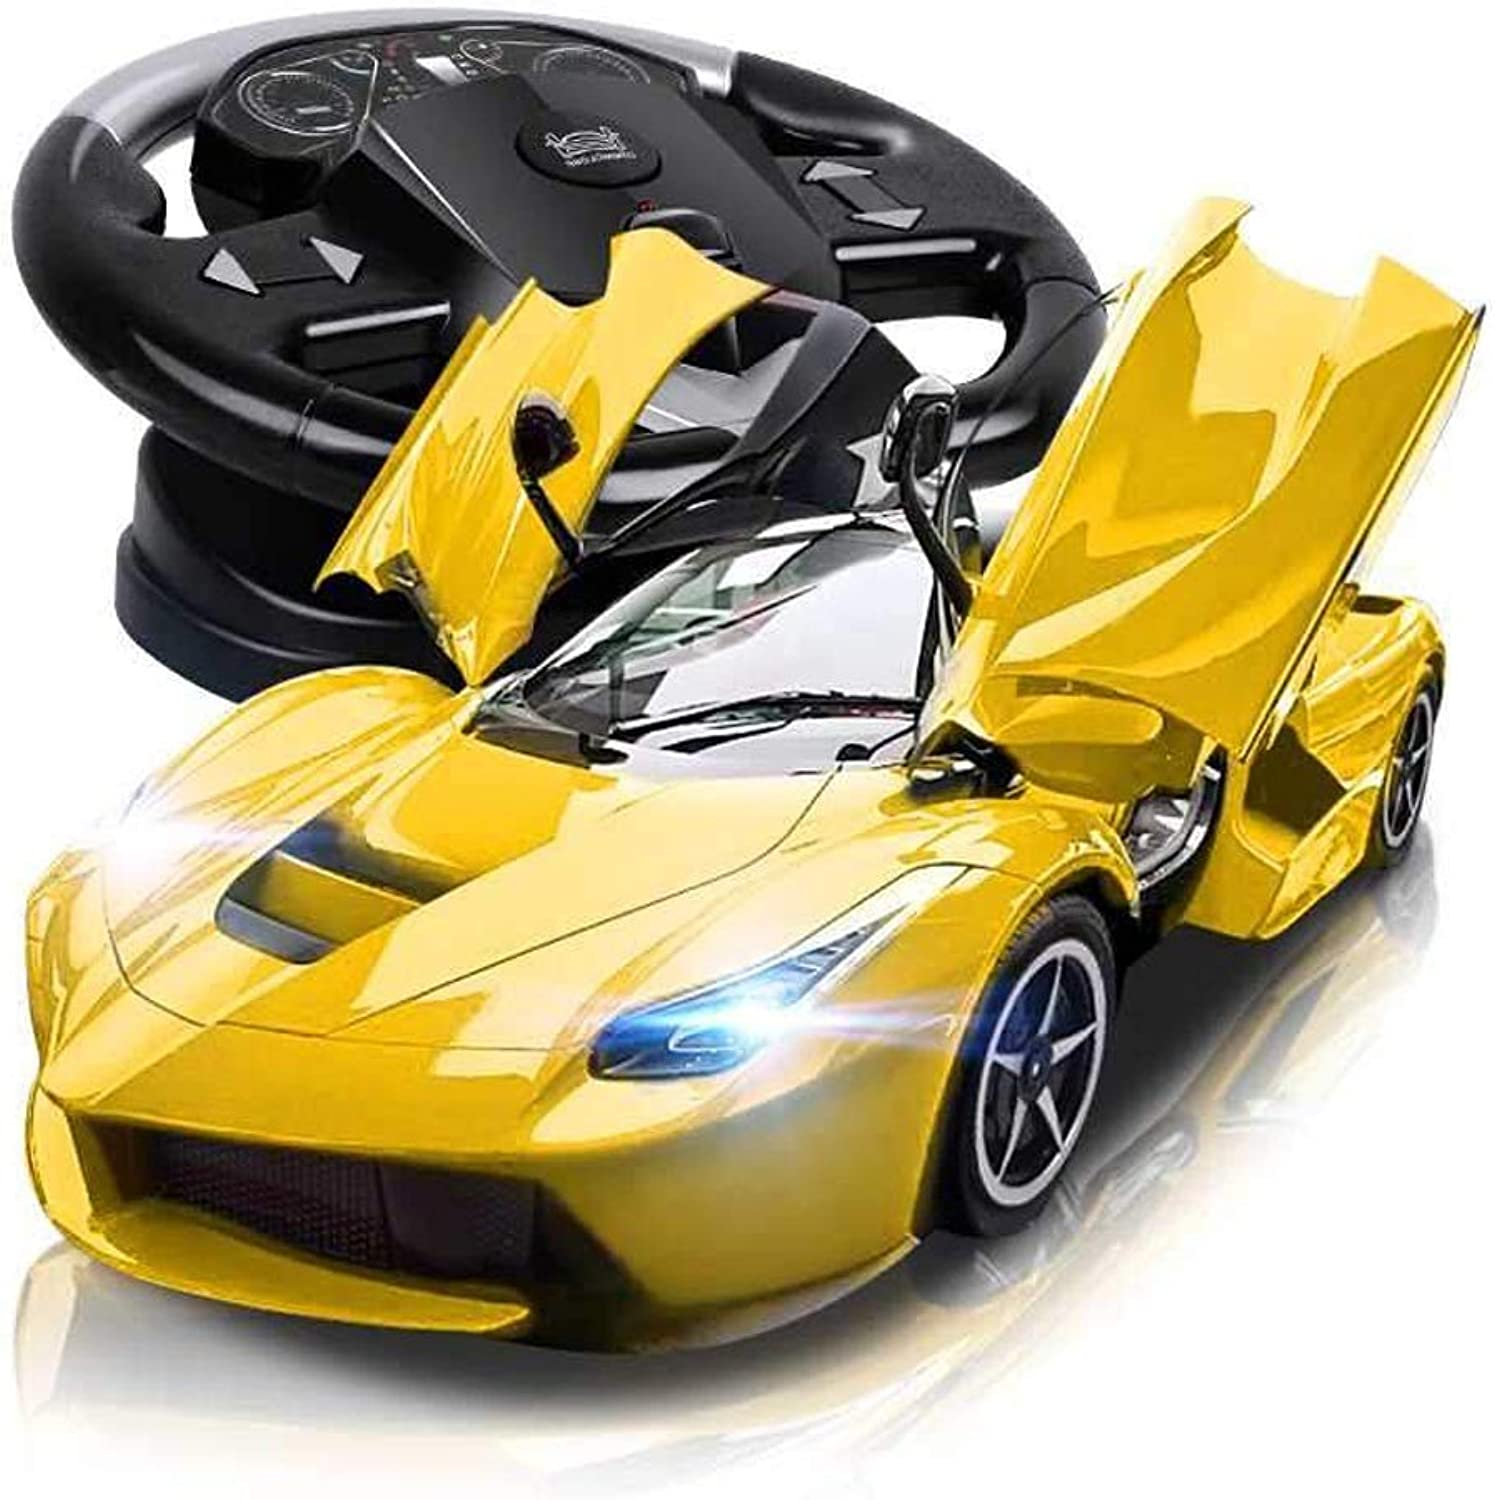 Wapipey 2.4G Remote Control Car For Kids Electric Radio Controlled On Road RC Car Official Licensed 1 10 Drift Gravity Induction Simulation Large Steering Wheel One Key To Open The Door Teenagers Adul